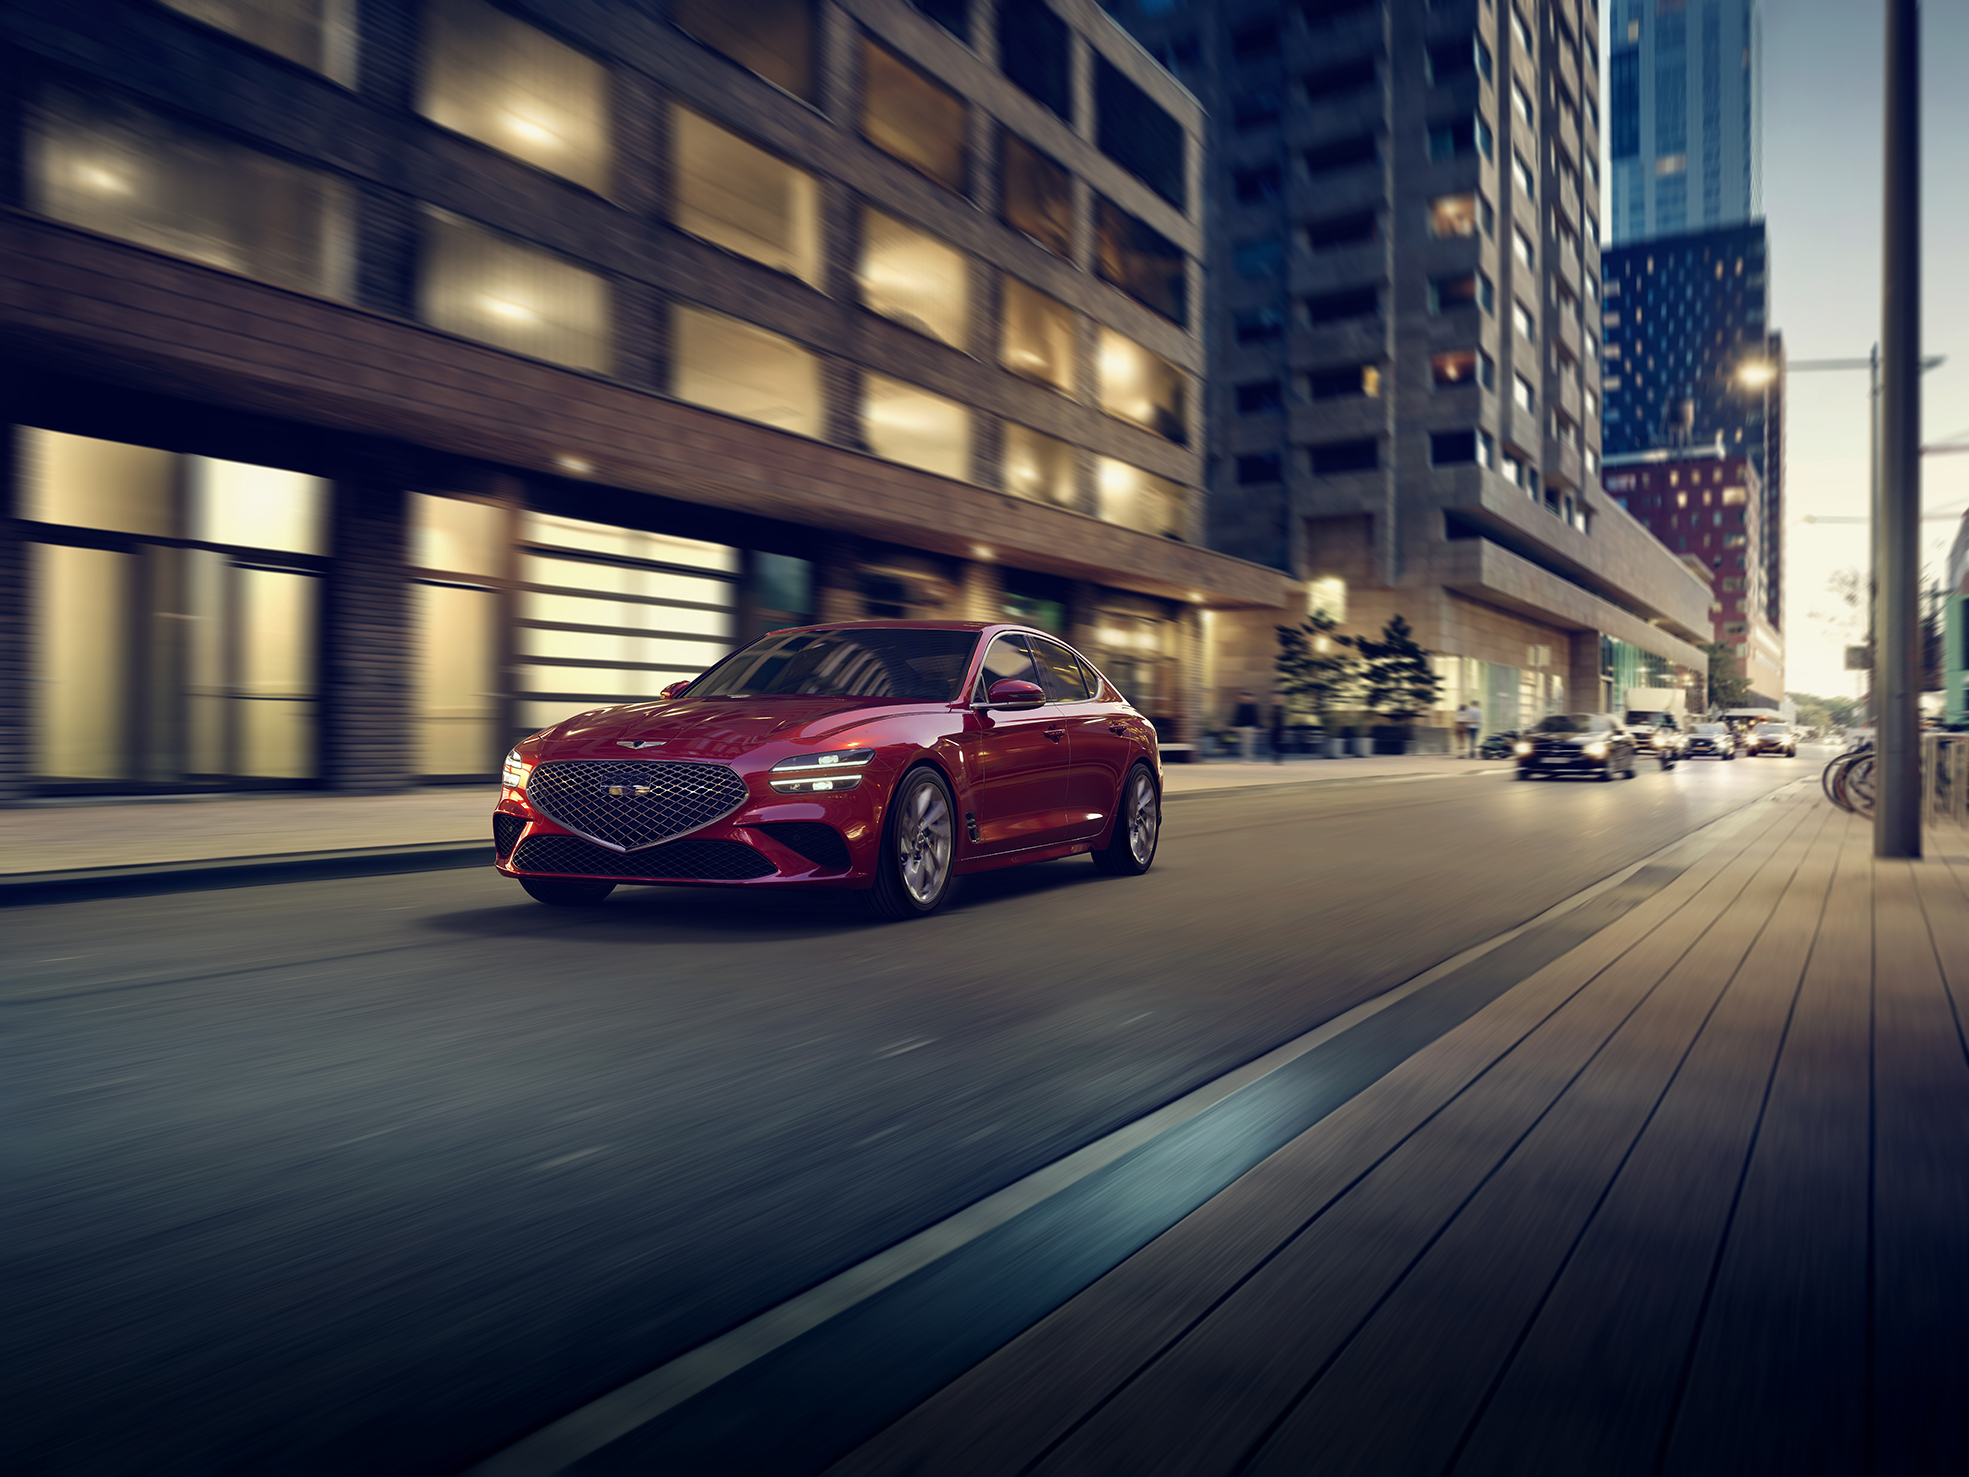 A red 2022 Genesis G70 rolling down a city street at night shot from the front 3/4